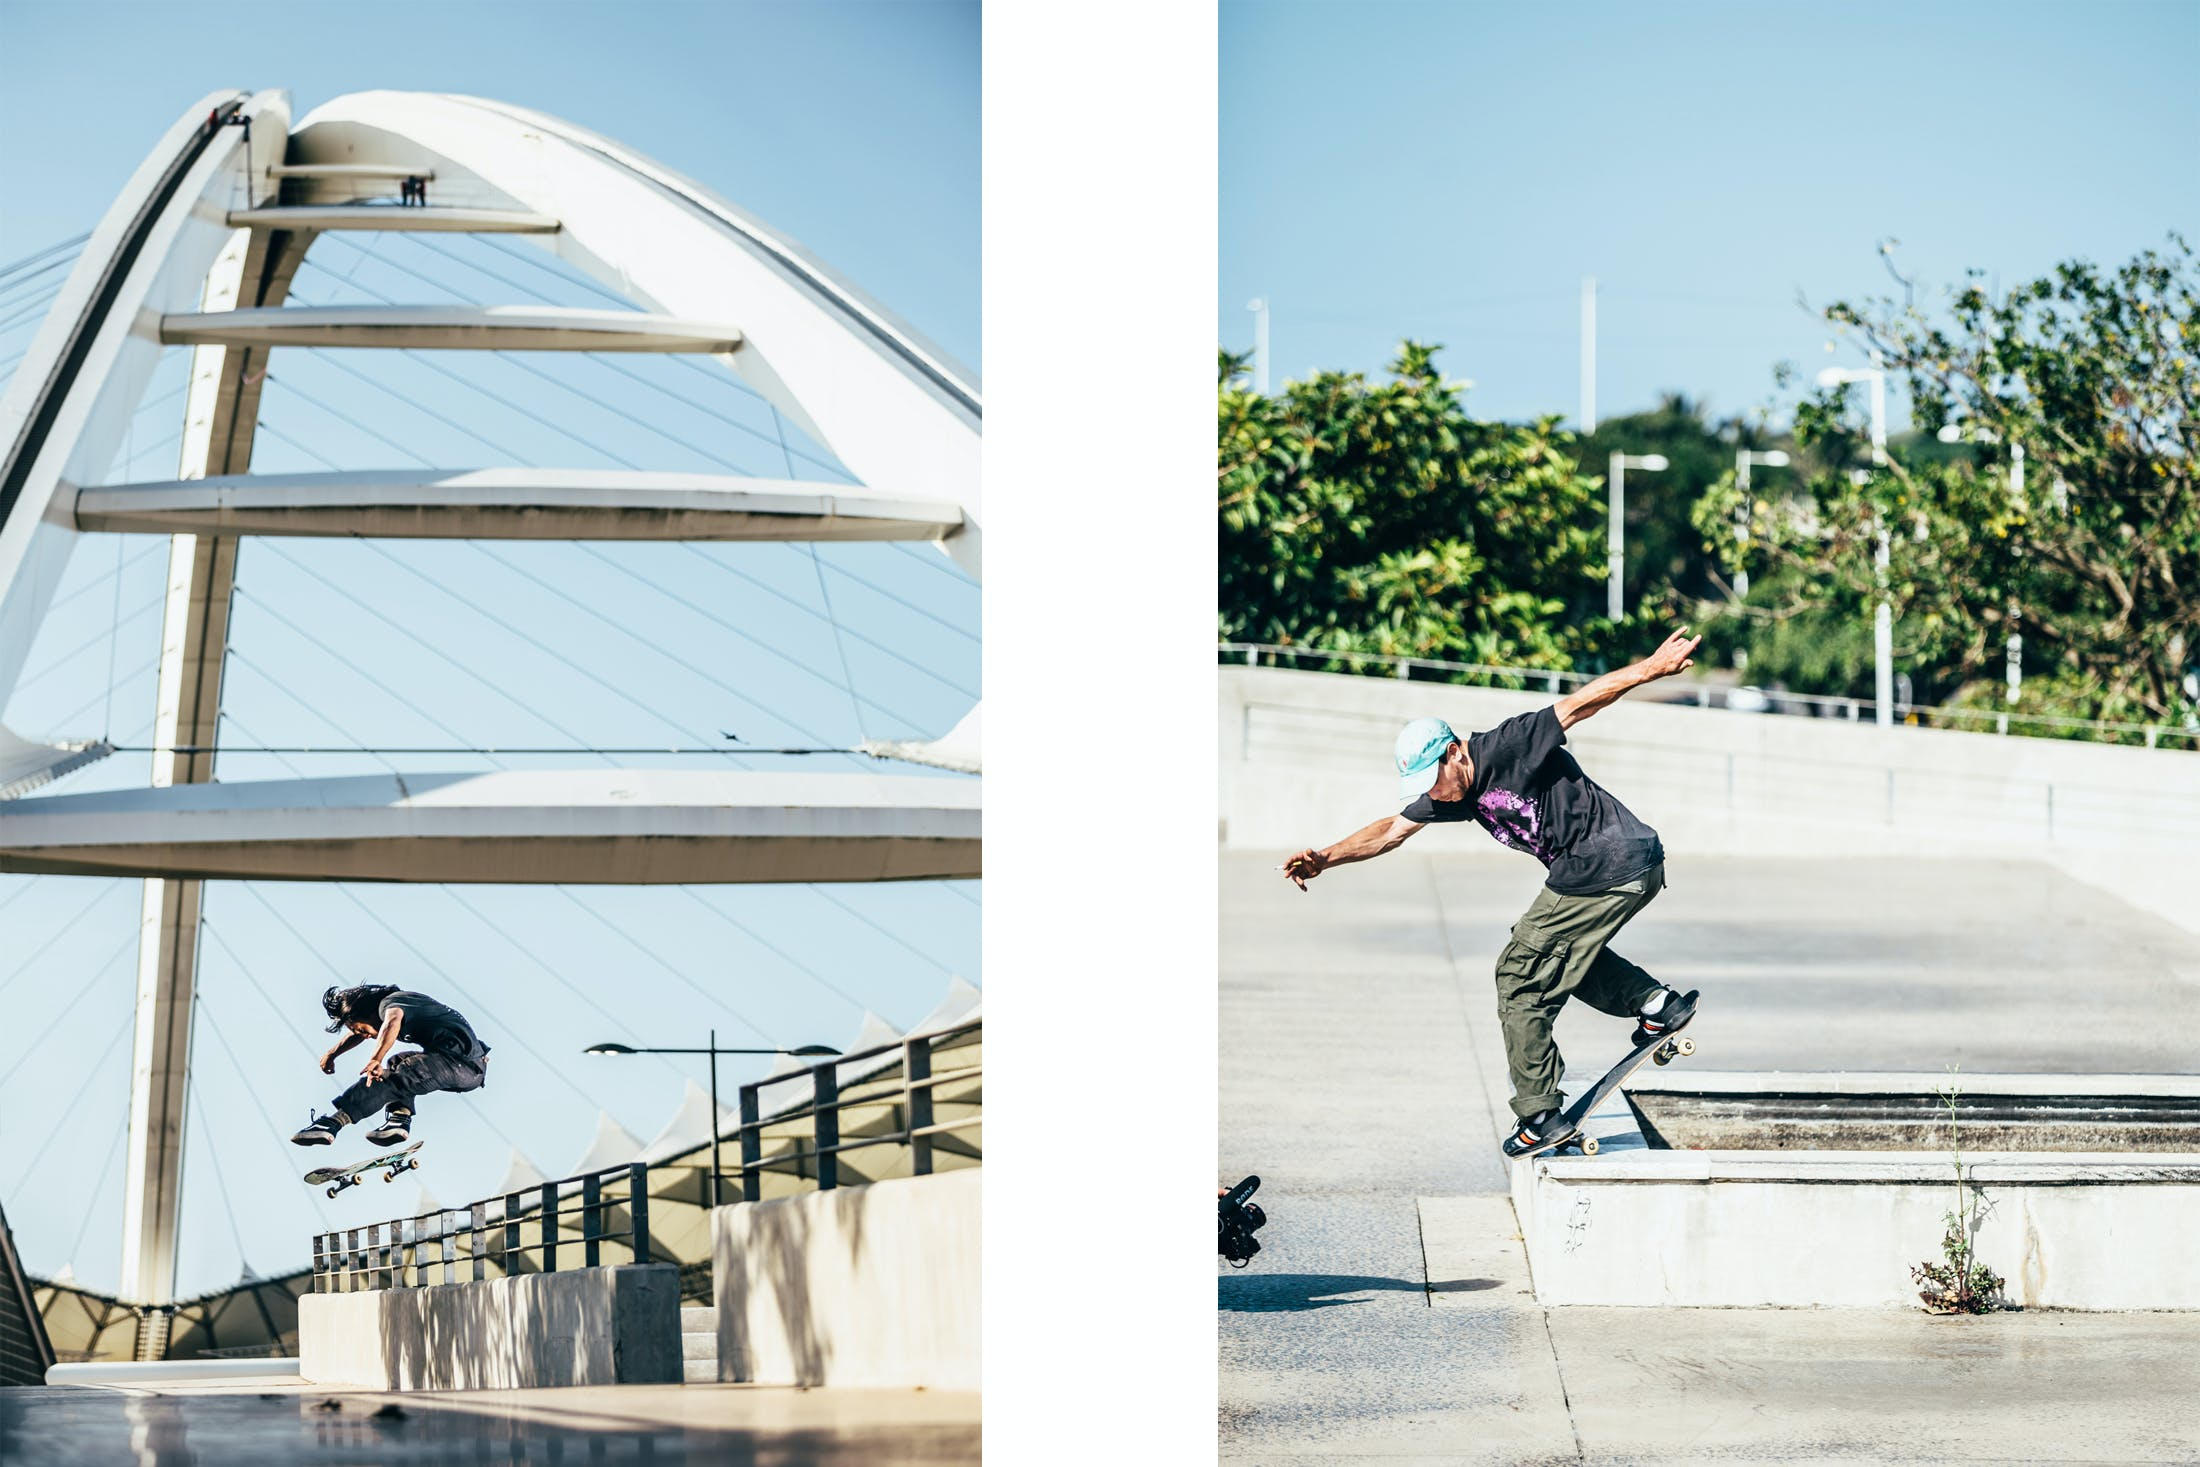 Darly Dominguez and Dylan Hughes Skateboardng in Durban